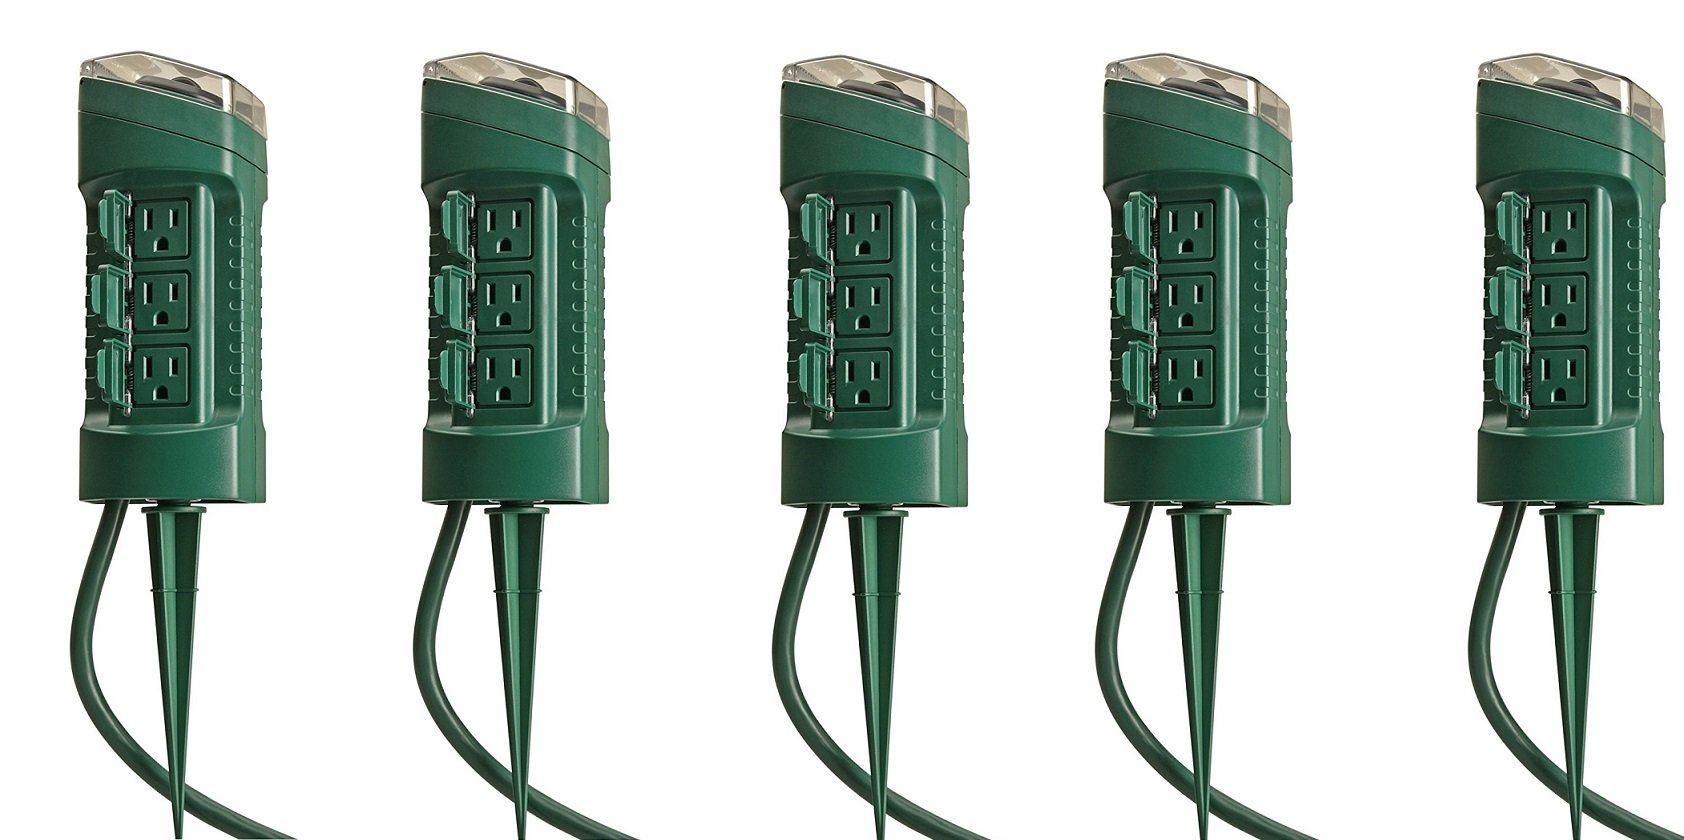 Woods 13547WD Outdoor Yard Stake with Photocell and Built-In Timer, 6 Grounded Outlets, 6ft Cord, Green (5' PACK) by Woods